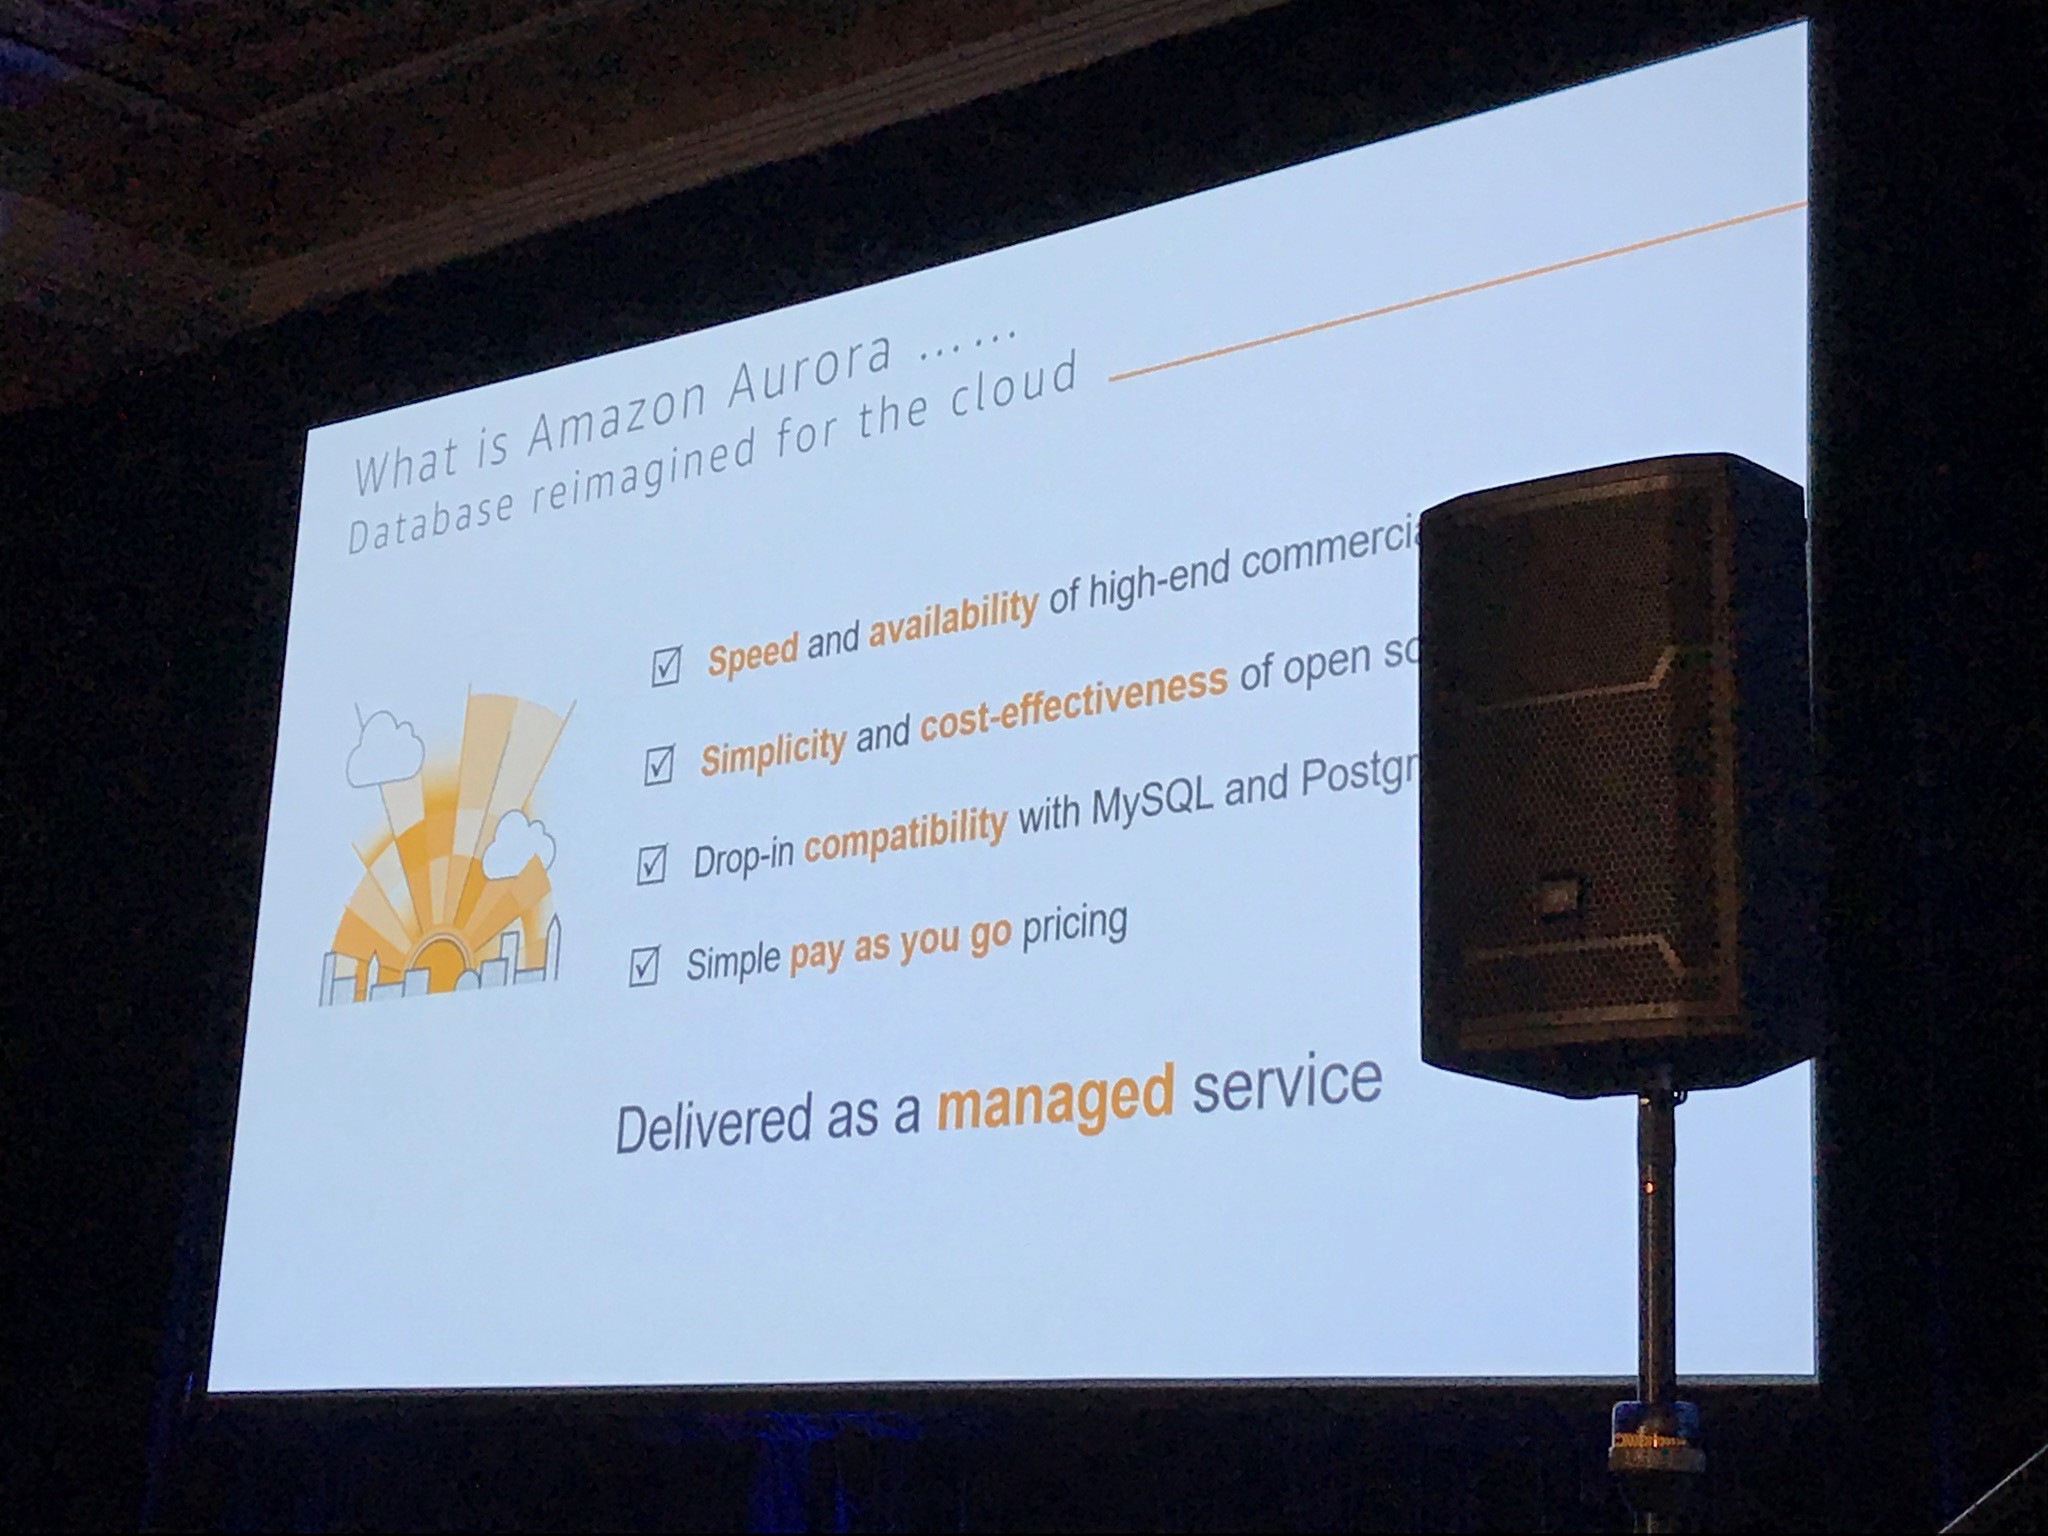 AWS re:invent 2017 — Day 1 - kubecloud